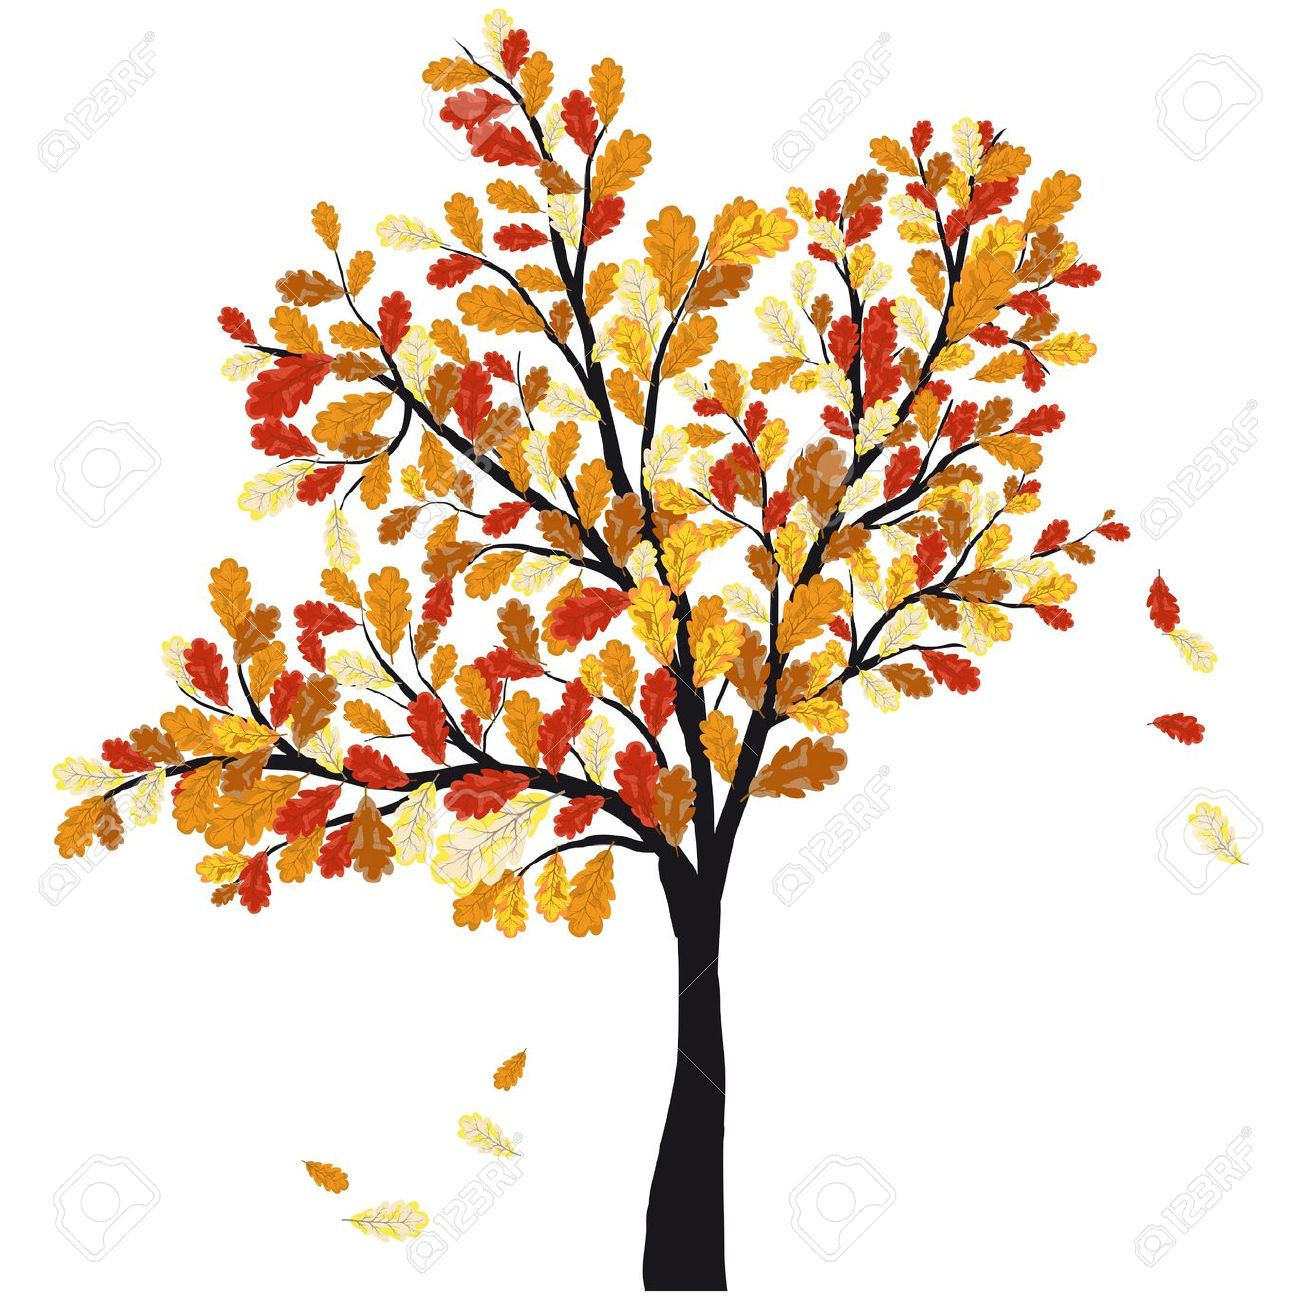 fall tree drawing at getdrawings com free for personal use fall rh getdrawings com autumn apple tree clipart